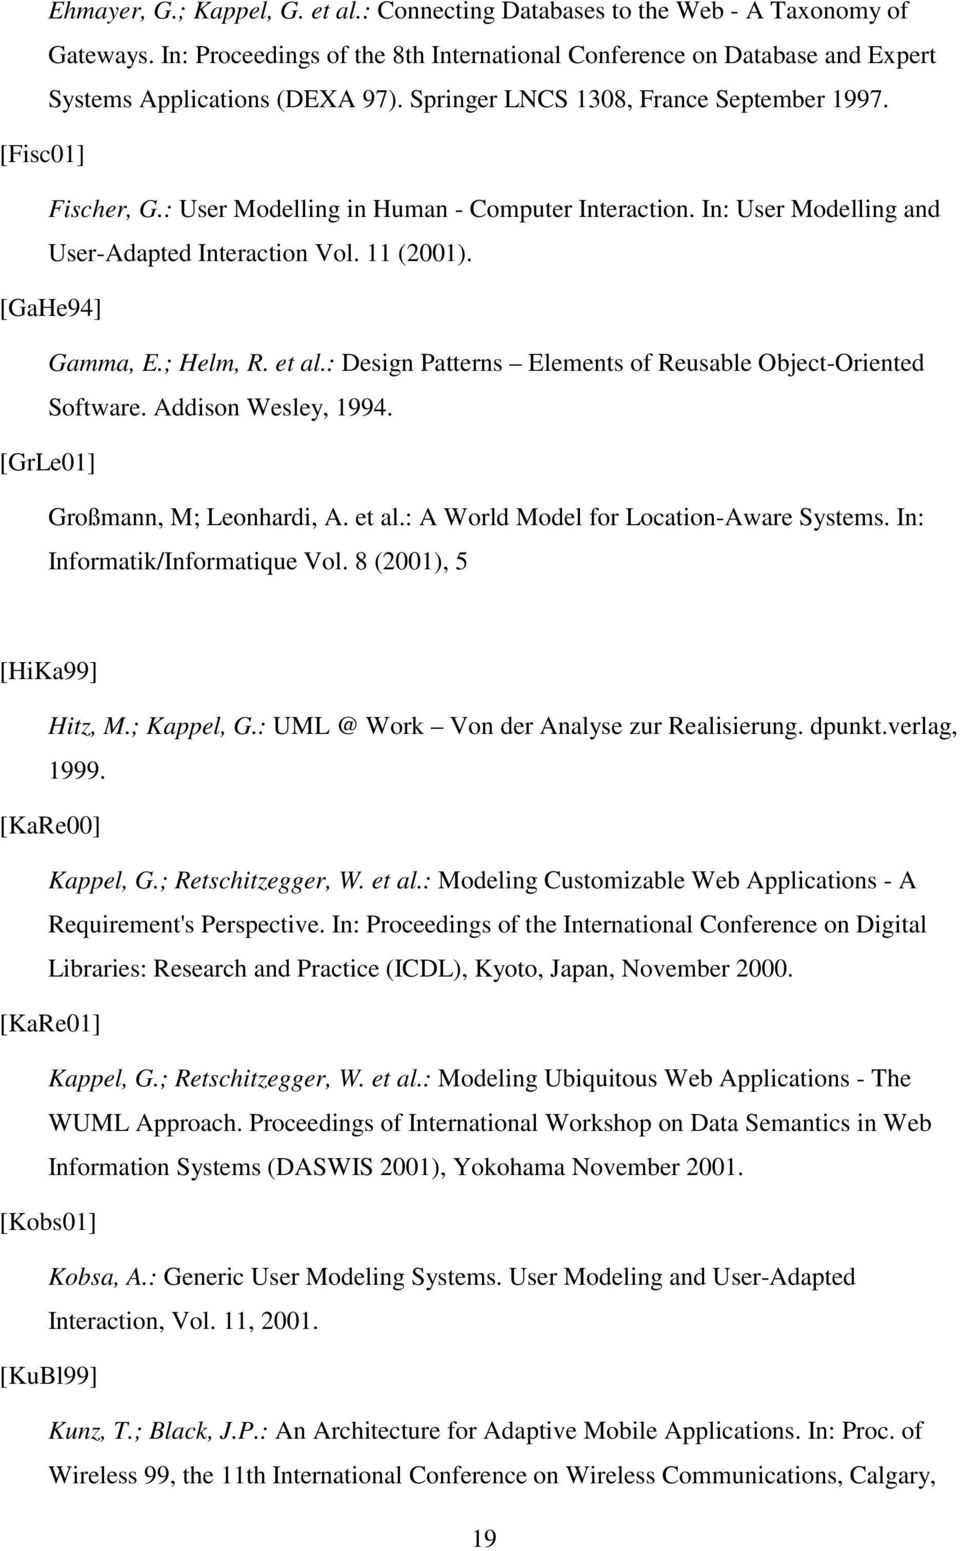 et al.: Design Patterns Elements of Reusable Object-Oriented Software. Addison Wesley, 994. [GrLe0] Großmann, M; Leonhardi, A. et al.: A World Model for Location-Aware Systems.